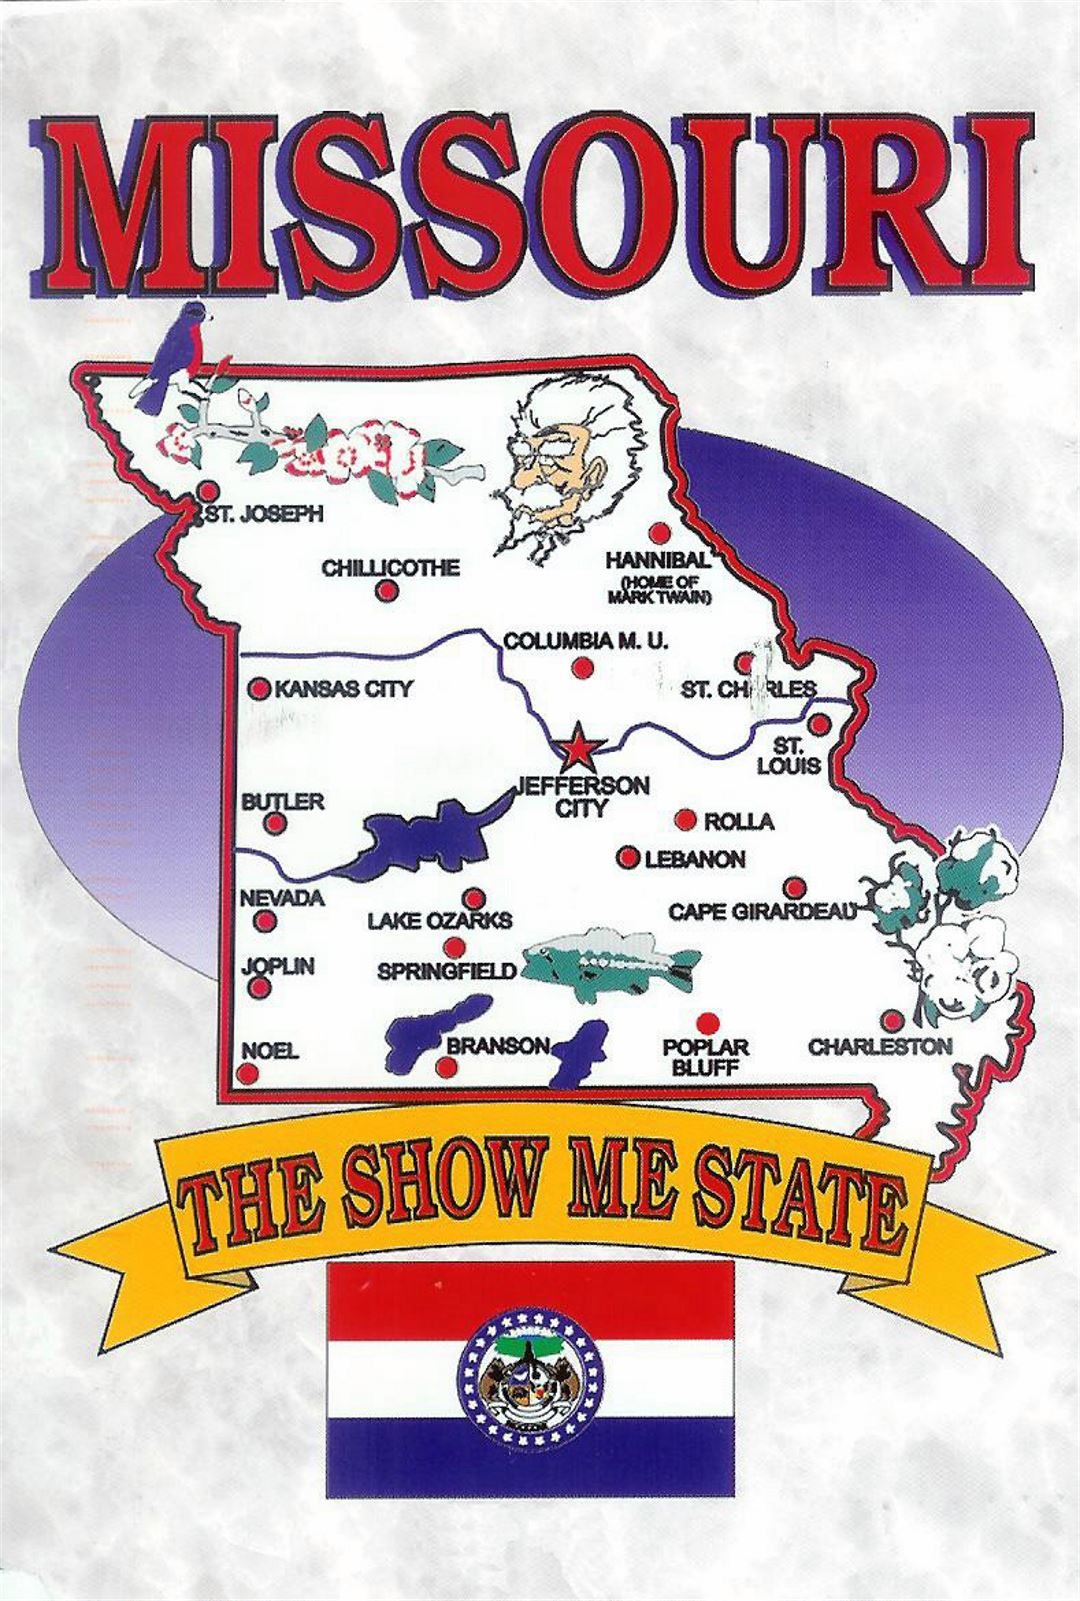 Detailed tourist illustrared map of Missouri state